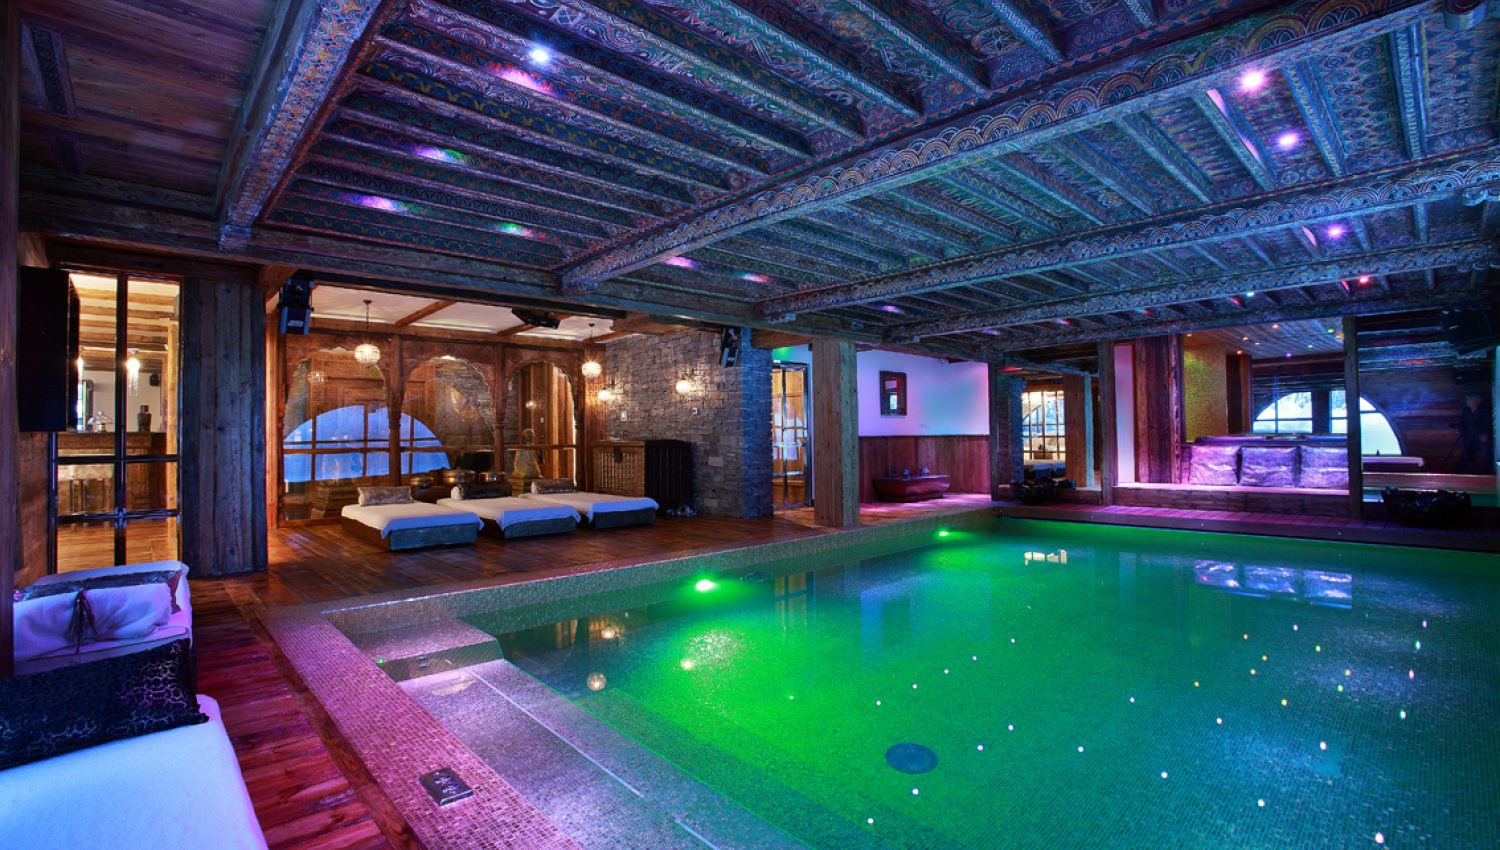 val-d-isere-chalet-marco-polo-17